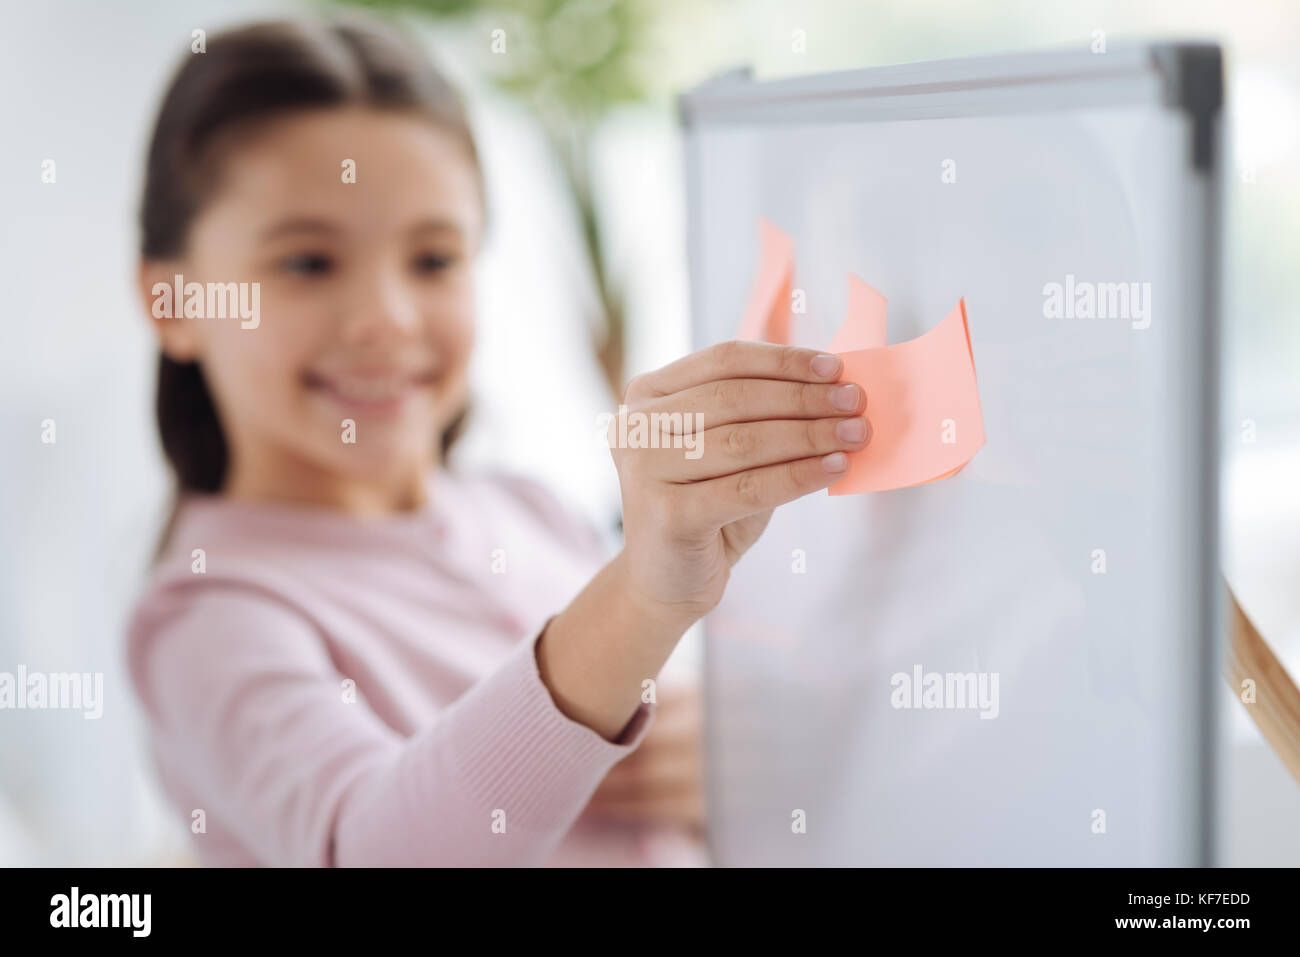 Selective focus of a pink sticky note - Stock Image